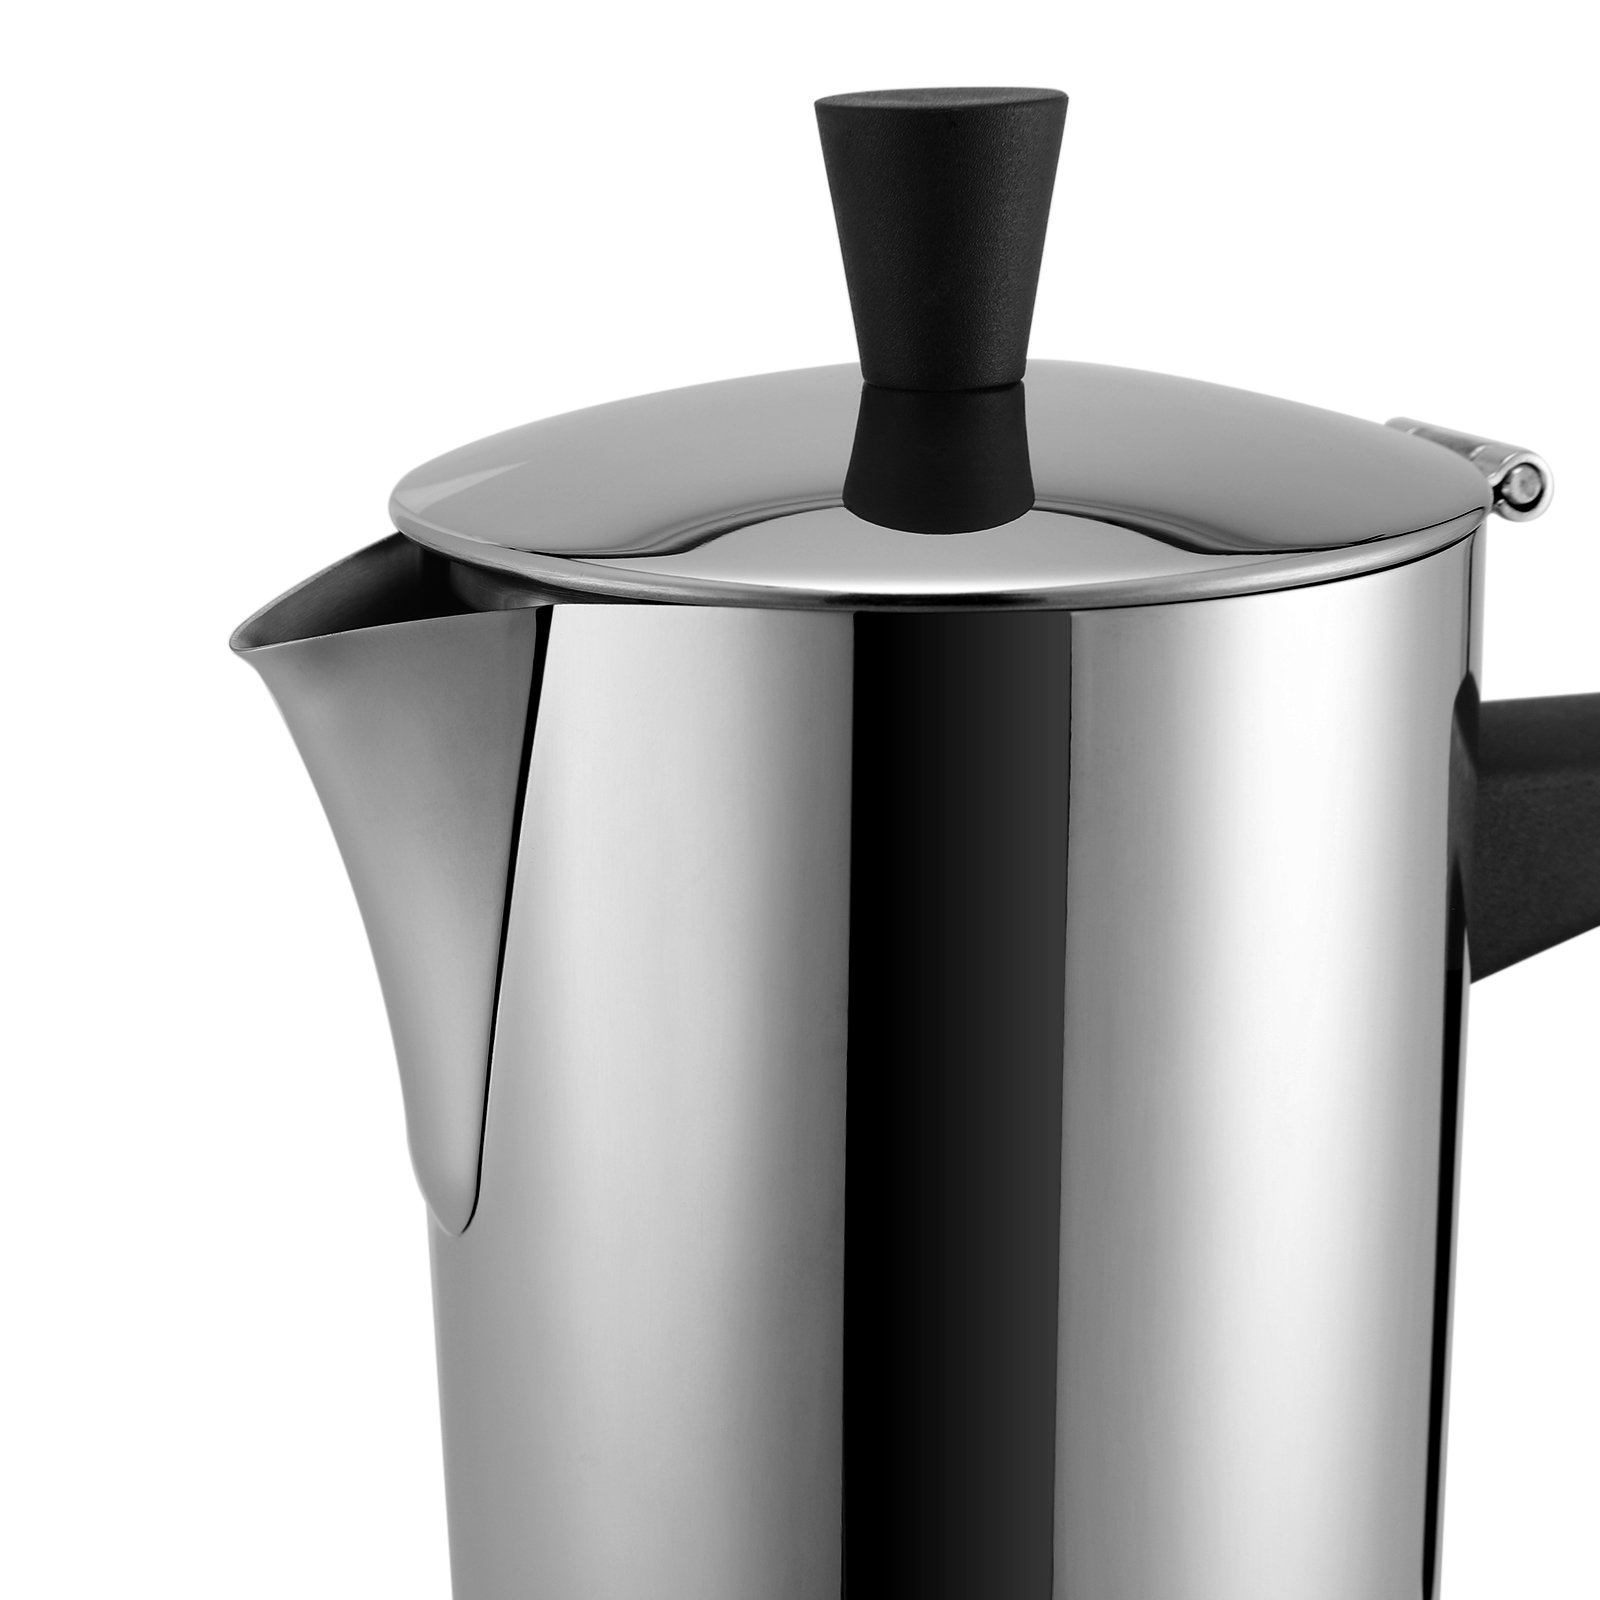 SONGMICS 6-Cup Stovetop Espresso Coffee Maker Moka Pot with Patented Valve, 18/8 Stainless Steel UKEM10BK by SONGMICS (Image #9)